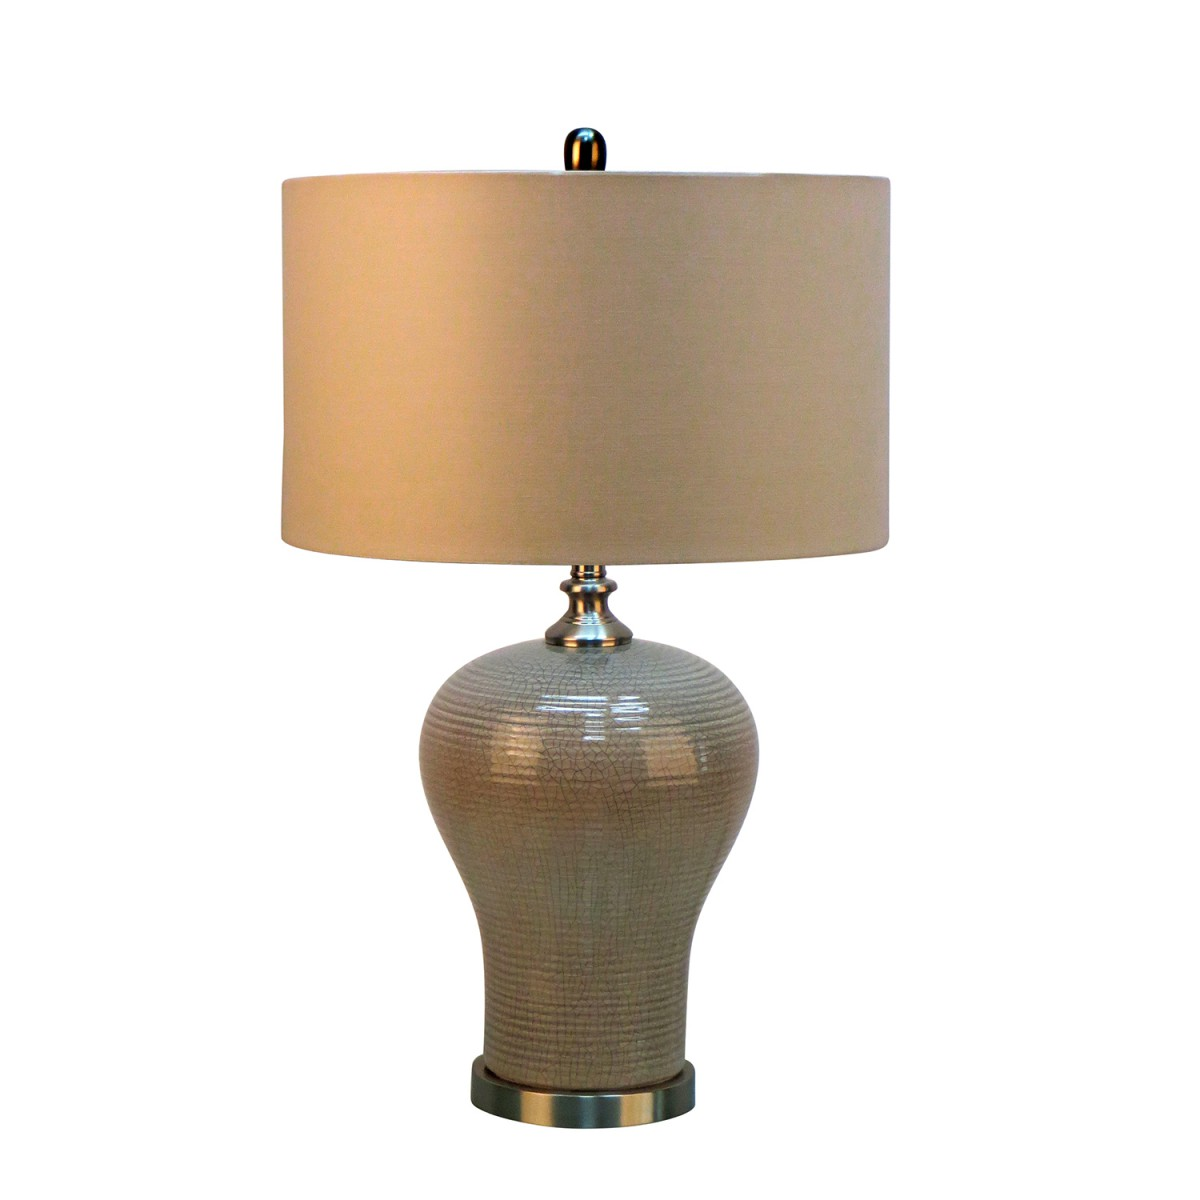 28 5 Quot H Ceramic Table Lamp With Metal Base